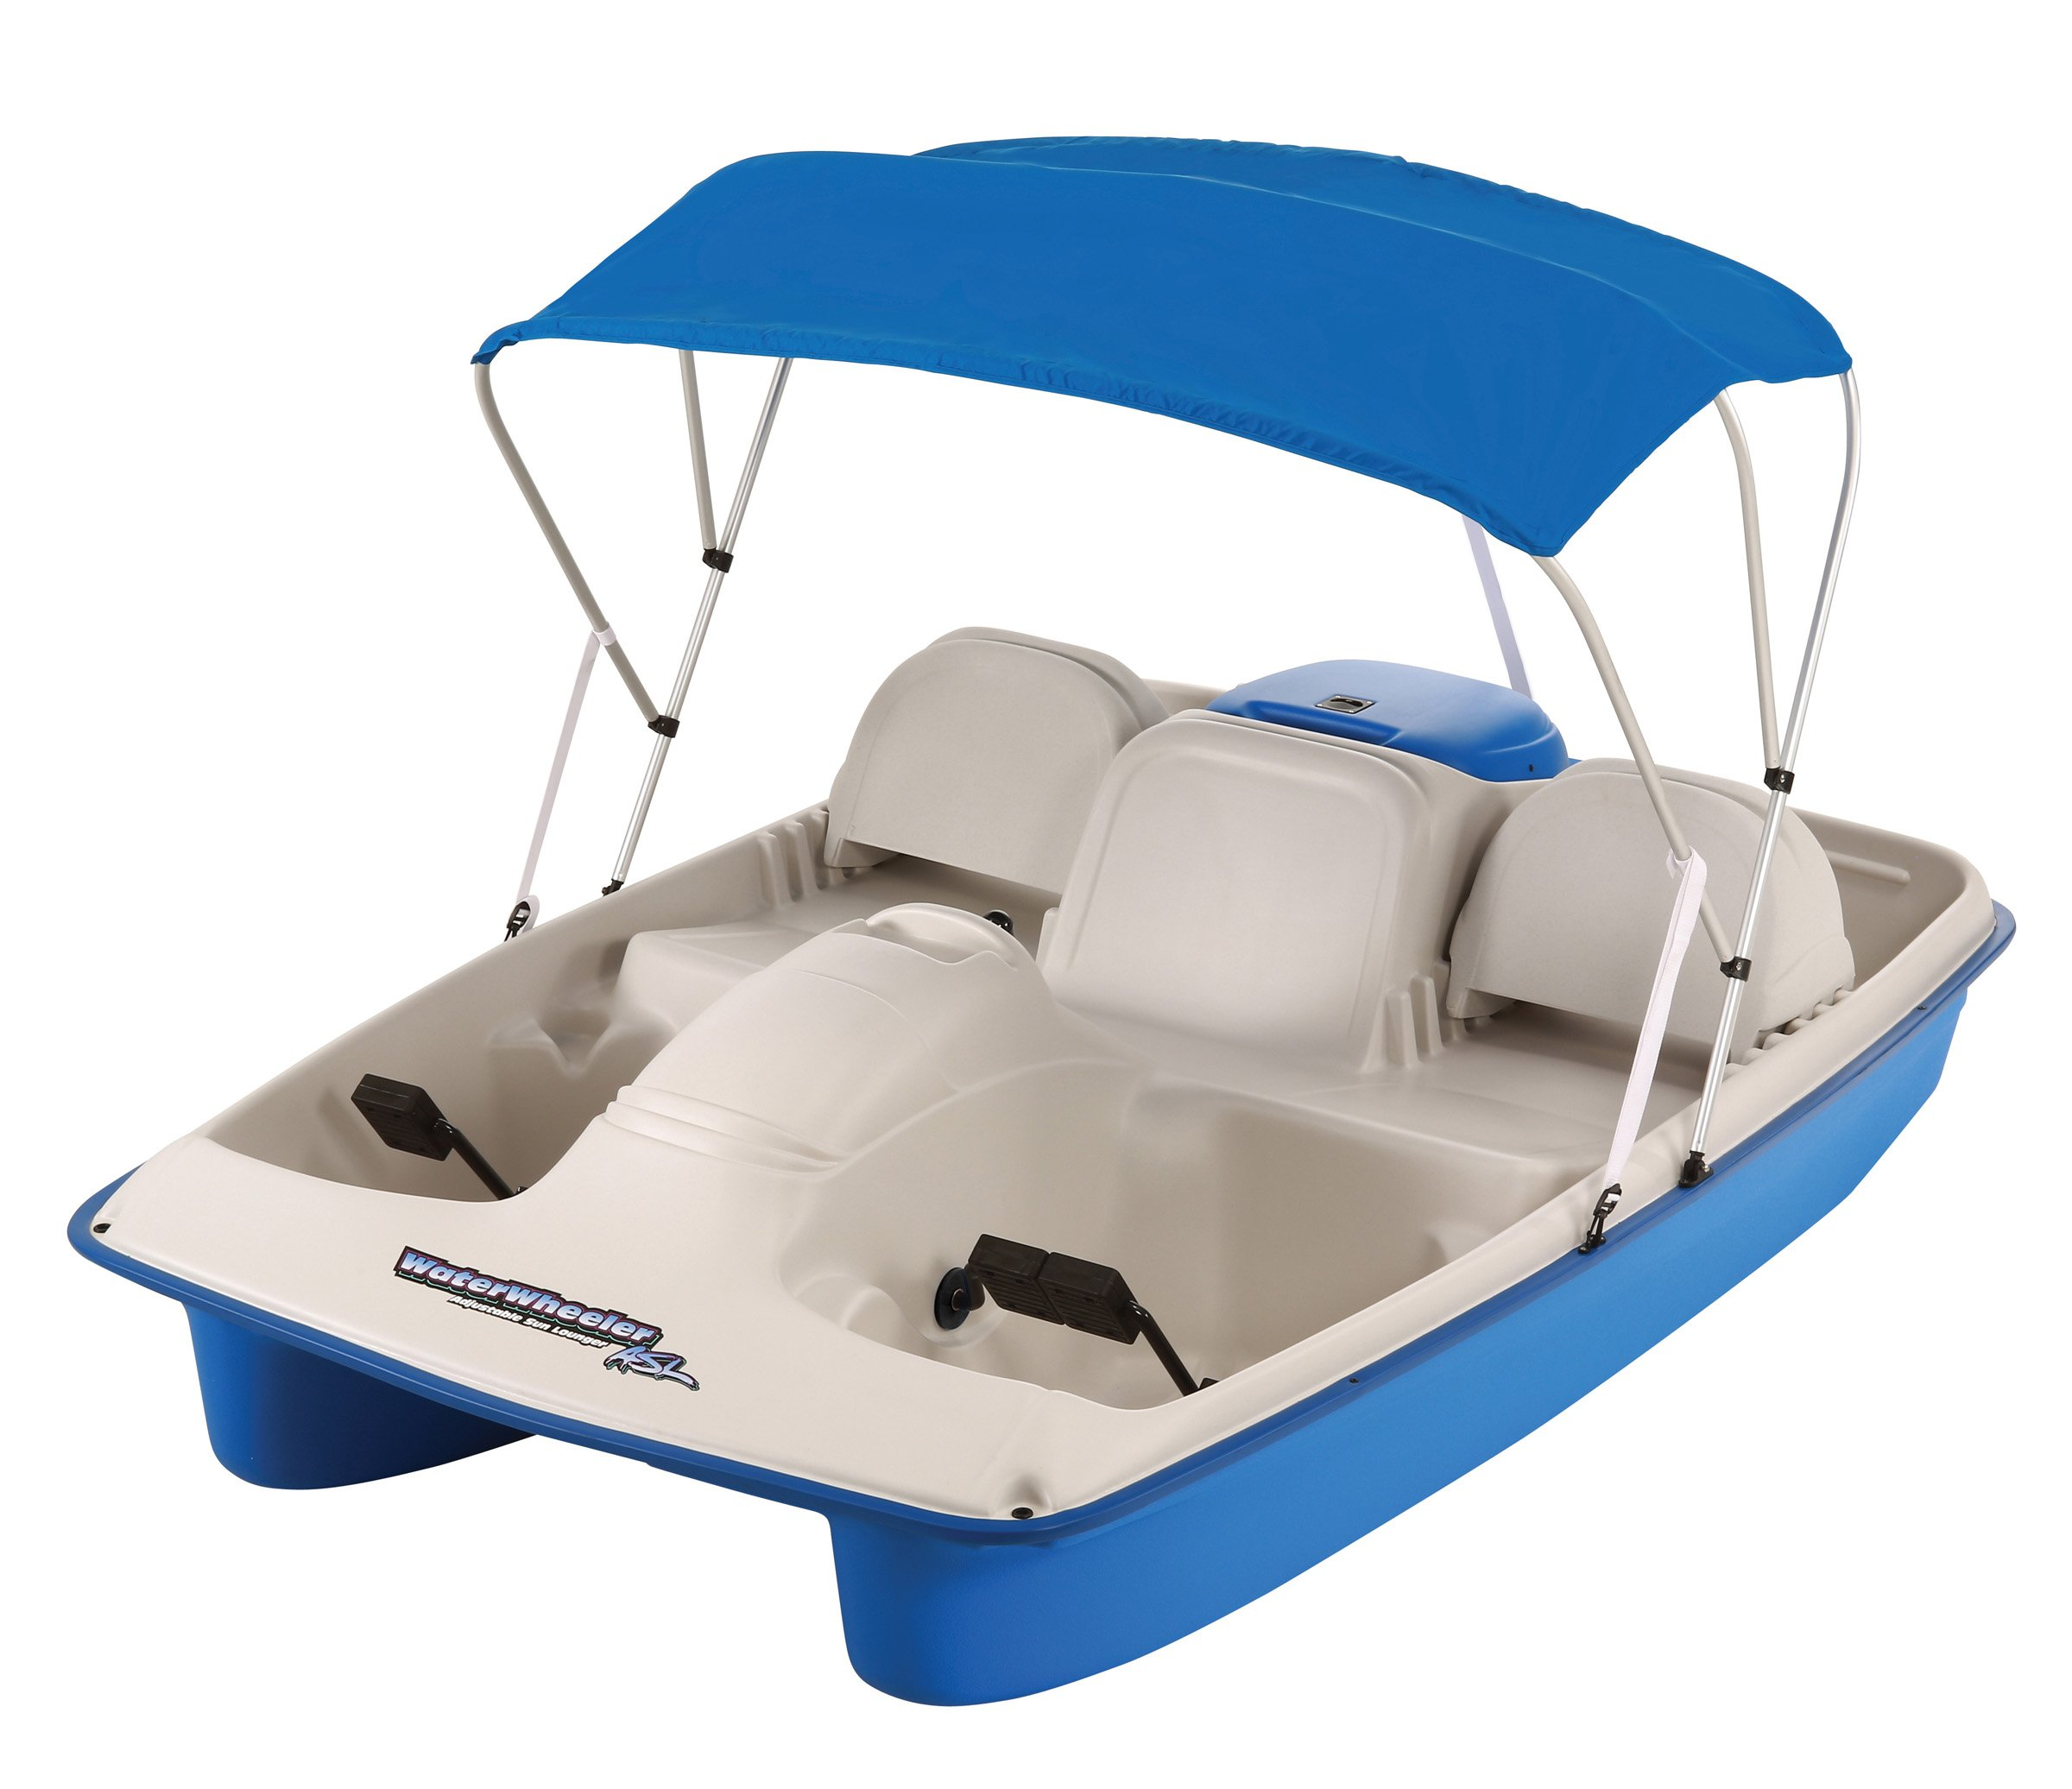 Sun Dolphin Water Wheeler Electric ASL 5 Person Pedal Boat with Canopy (Blue) by Sun Dolphin